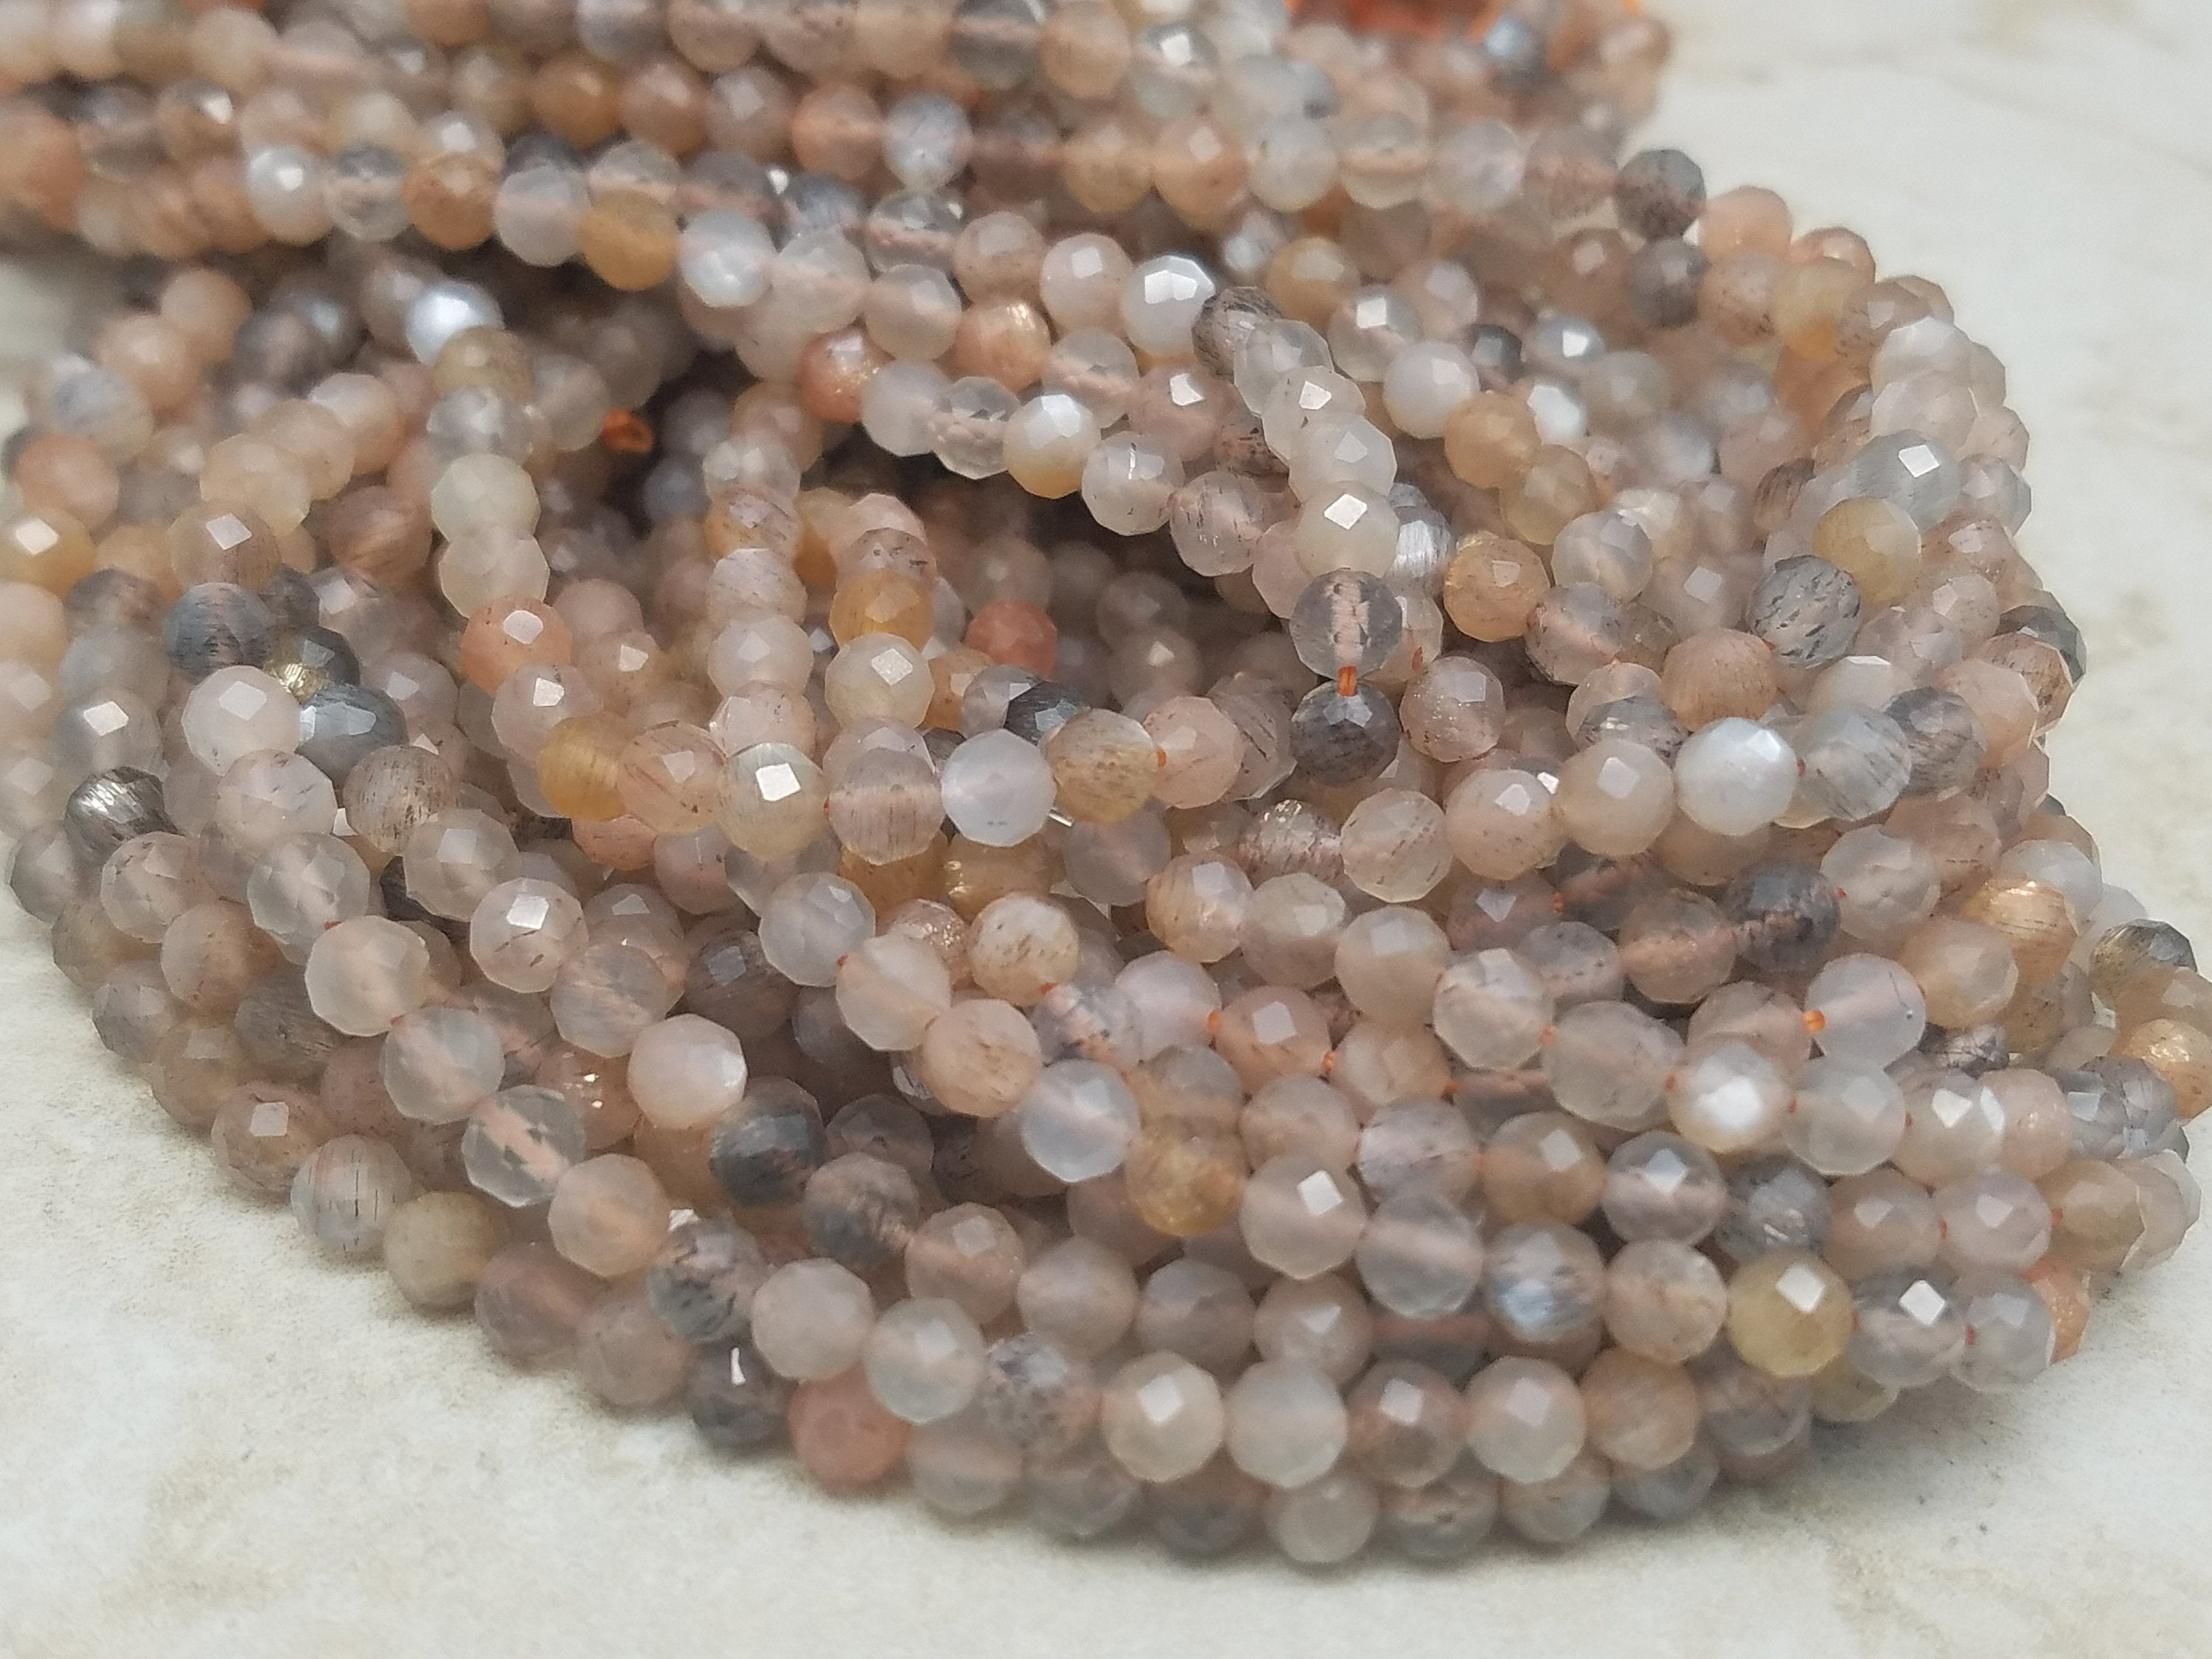 3mm or 4mm Peach and Gray Mixed Moonstone Faceted Round Beads, 15 inch